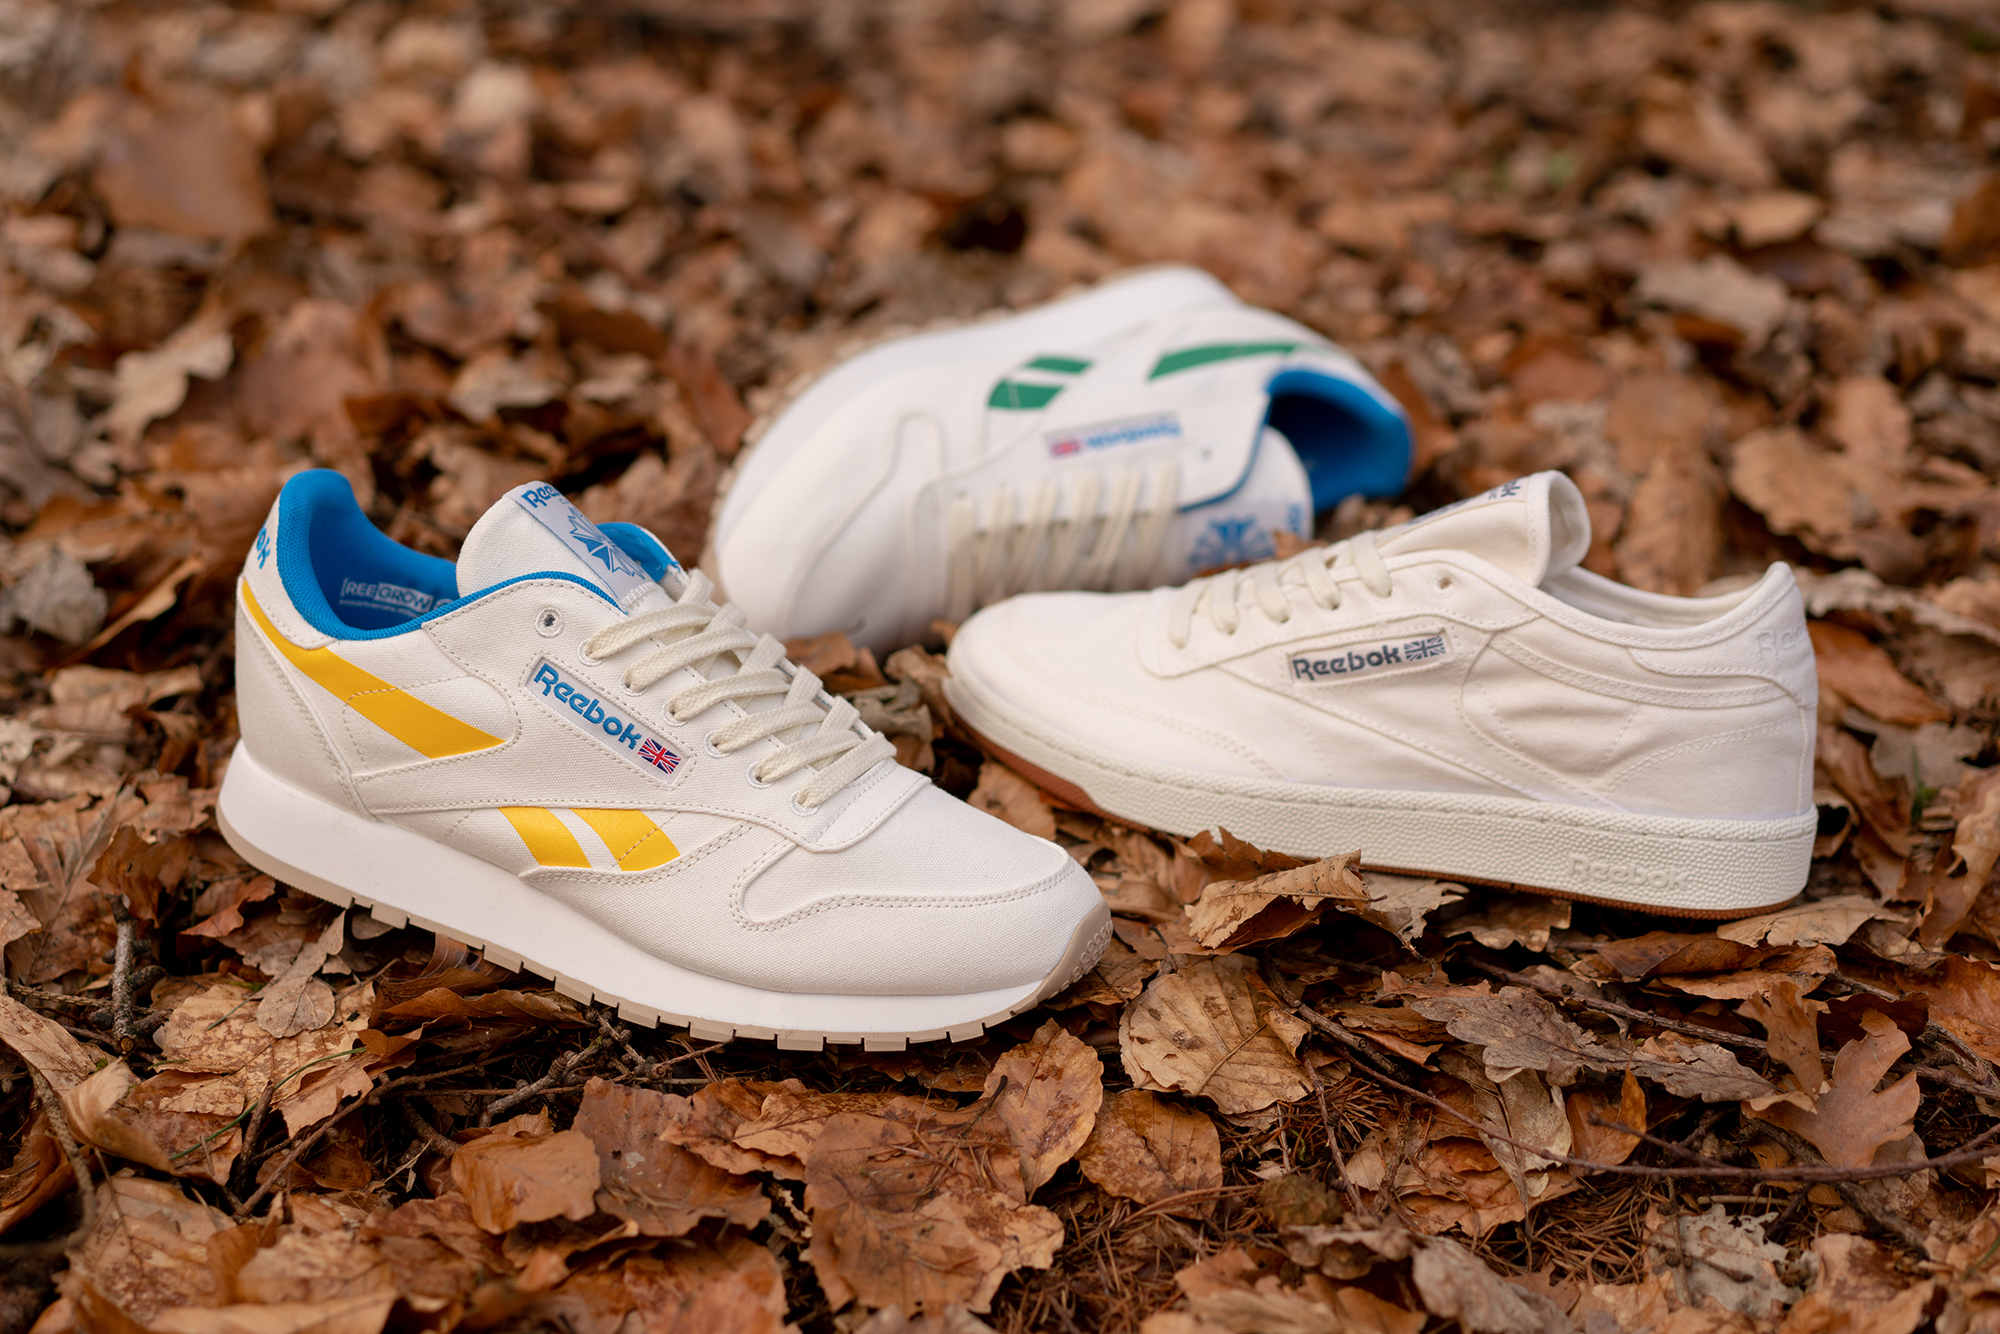 Reebok goes sustainable with its [REE]GROW pack